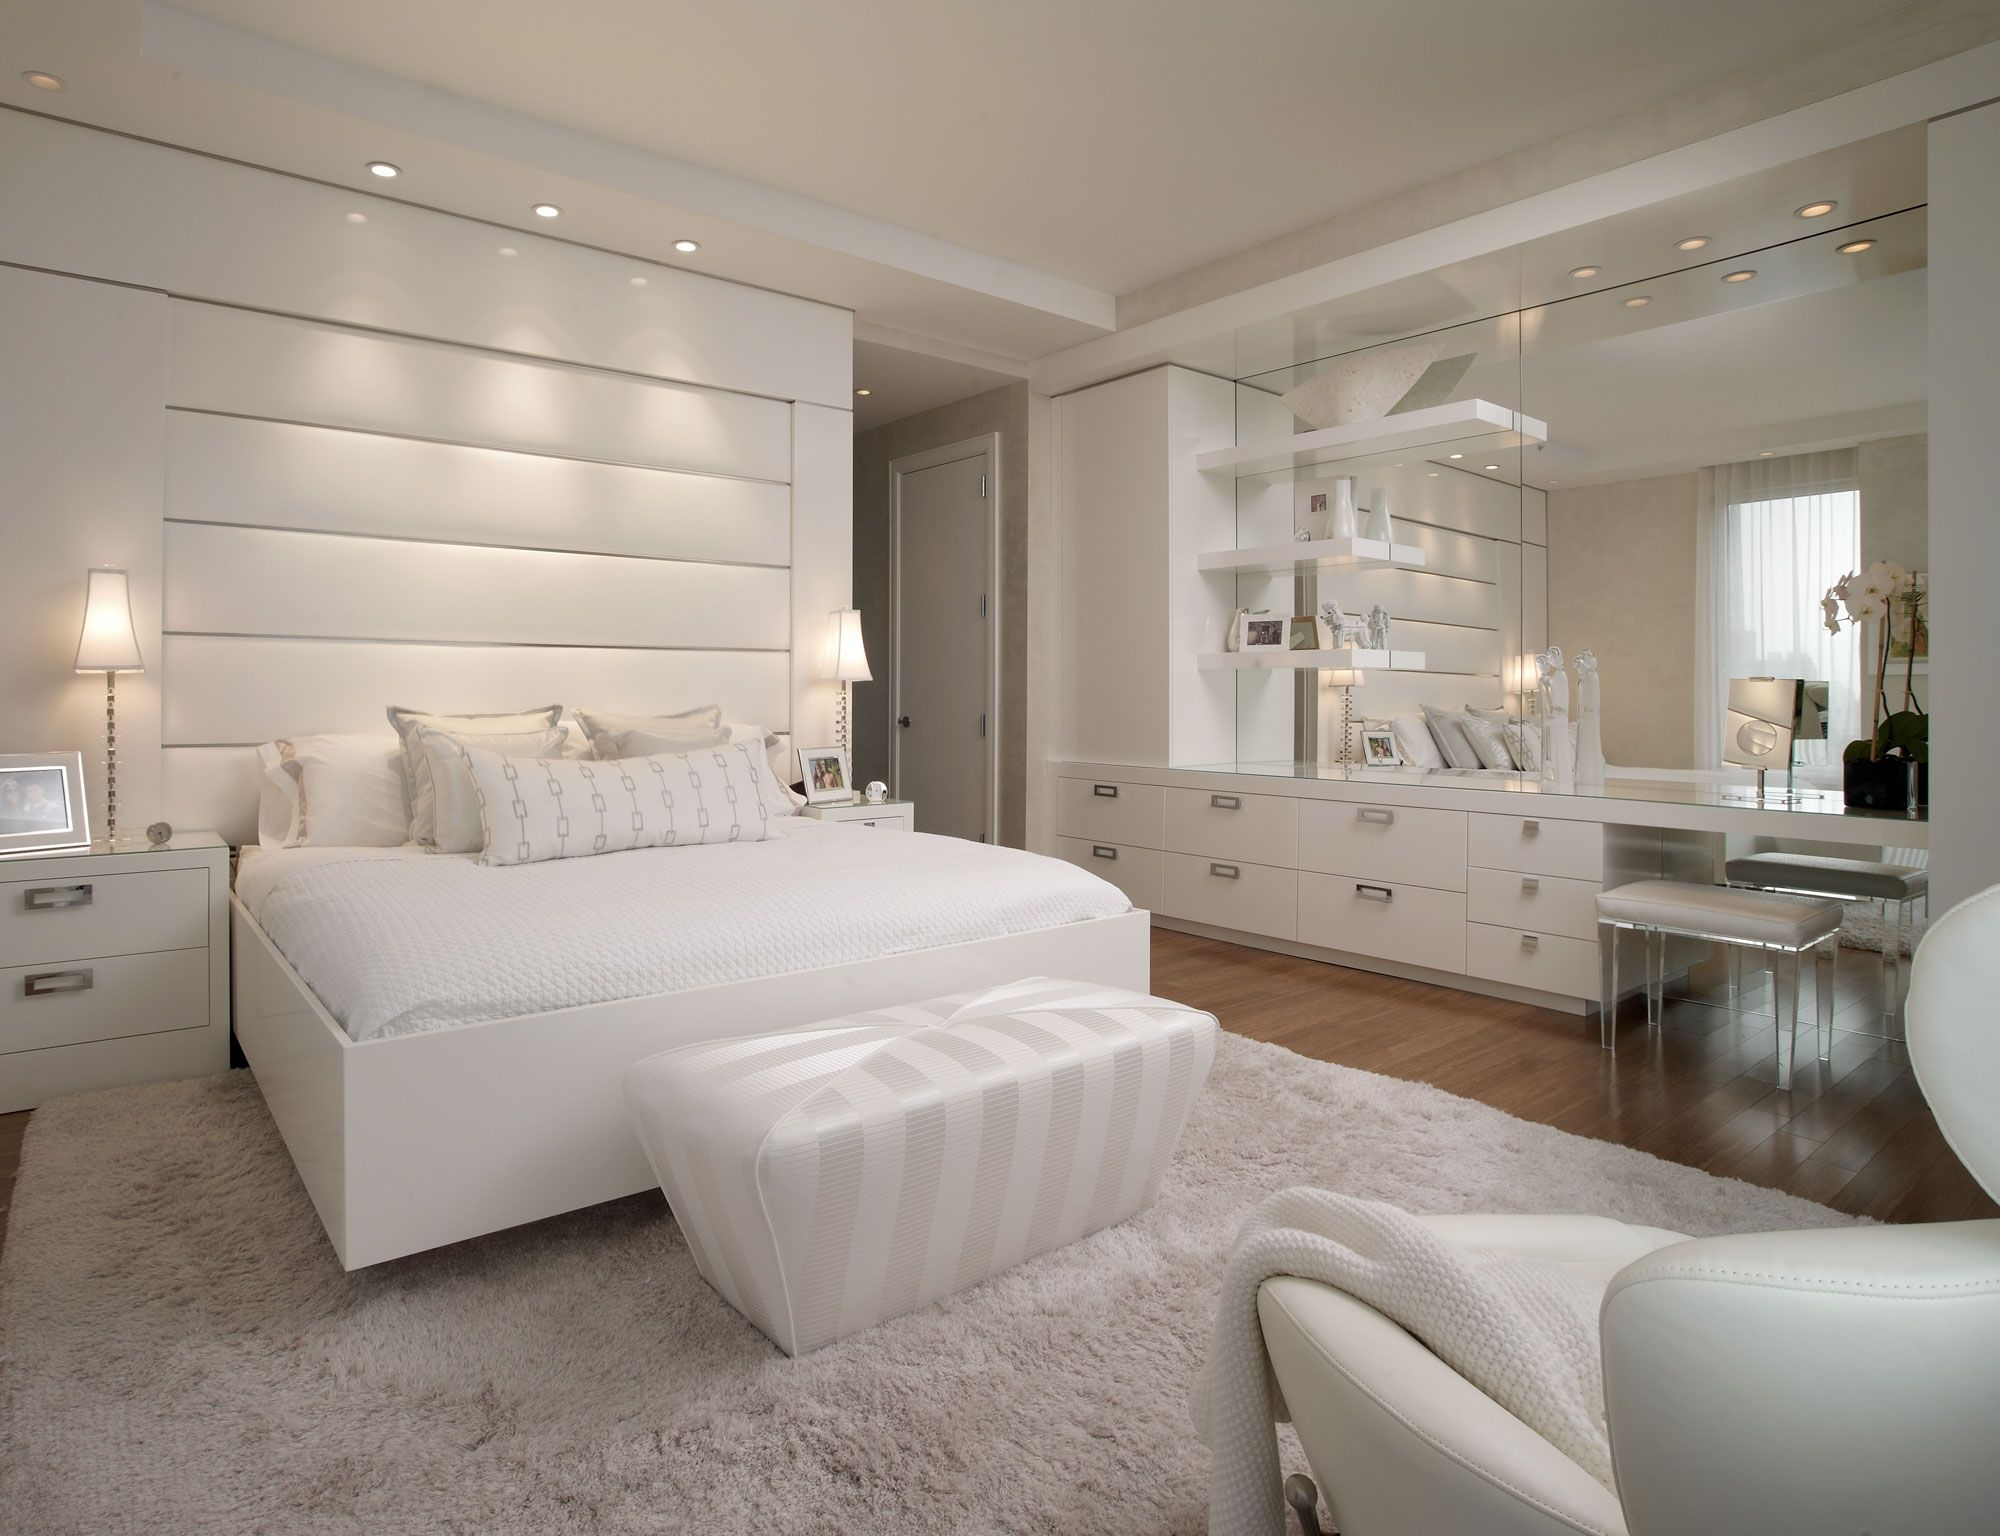 White Bedrooms Luxury All White Bedroom Decorating Ideas Amazing Glamorous